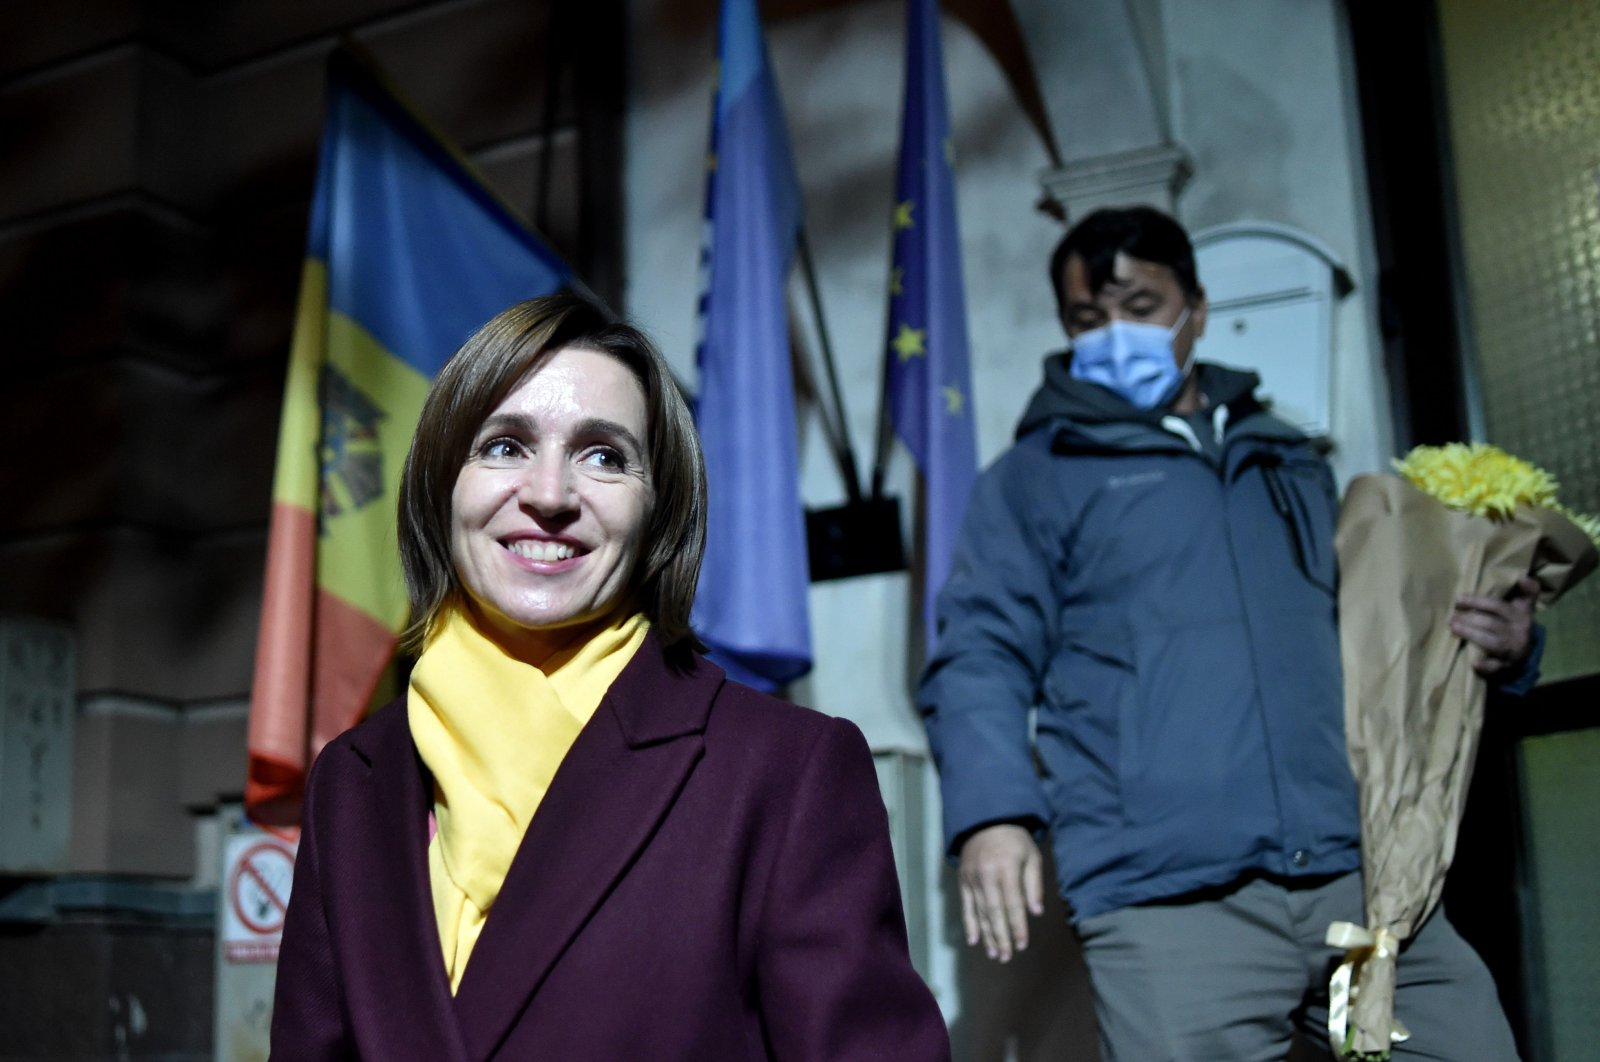 Moldovan presidential candidate Maia Sandu smiles as she leaves the Action and Solidarity Party office following her victory in the second round of the country's presidential election, Chisinau, Moldova, Nov. 16, 2020. (AFP Photo)